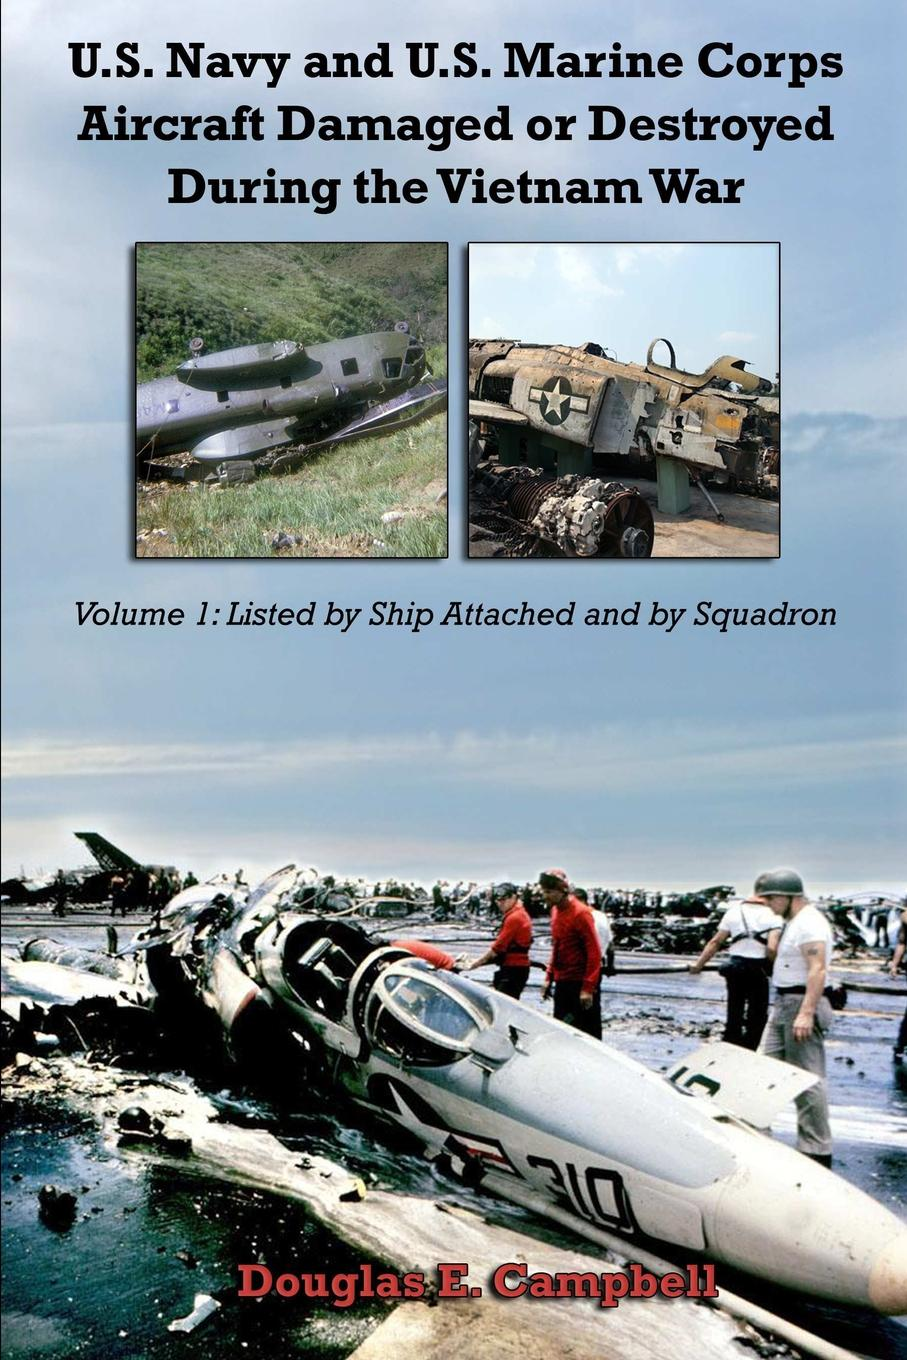 Douglas E. Campbell U.S. Navy and U.S. Marine Corps Aircraft Damaged or Destroyed During the Vietnam War. Volume 1. Listed by Ship Attached and by Squadron edward miller the vietnam war a documentary reader